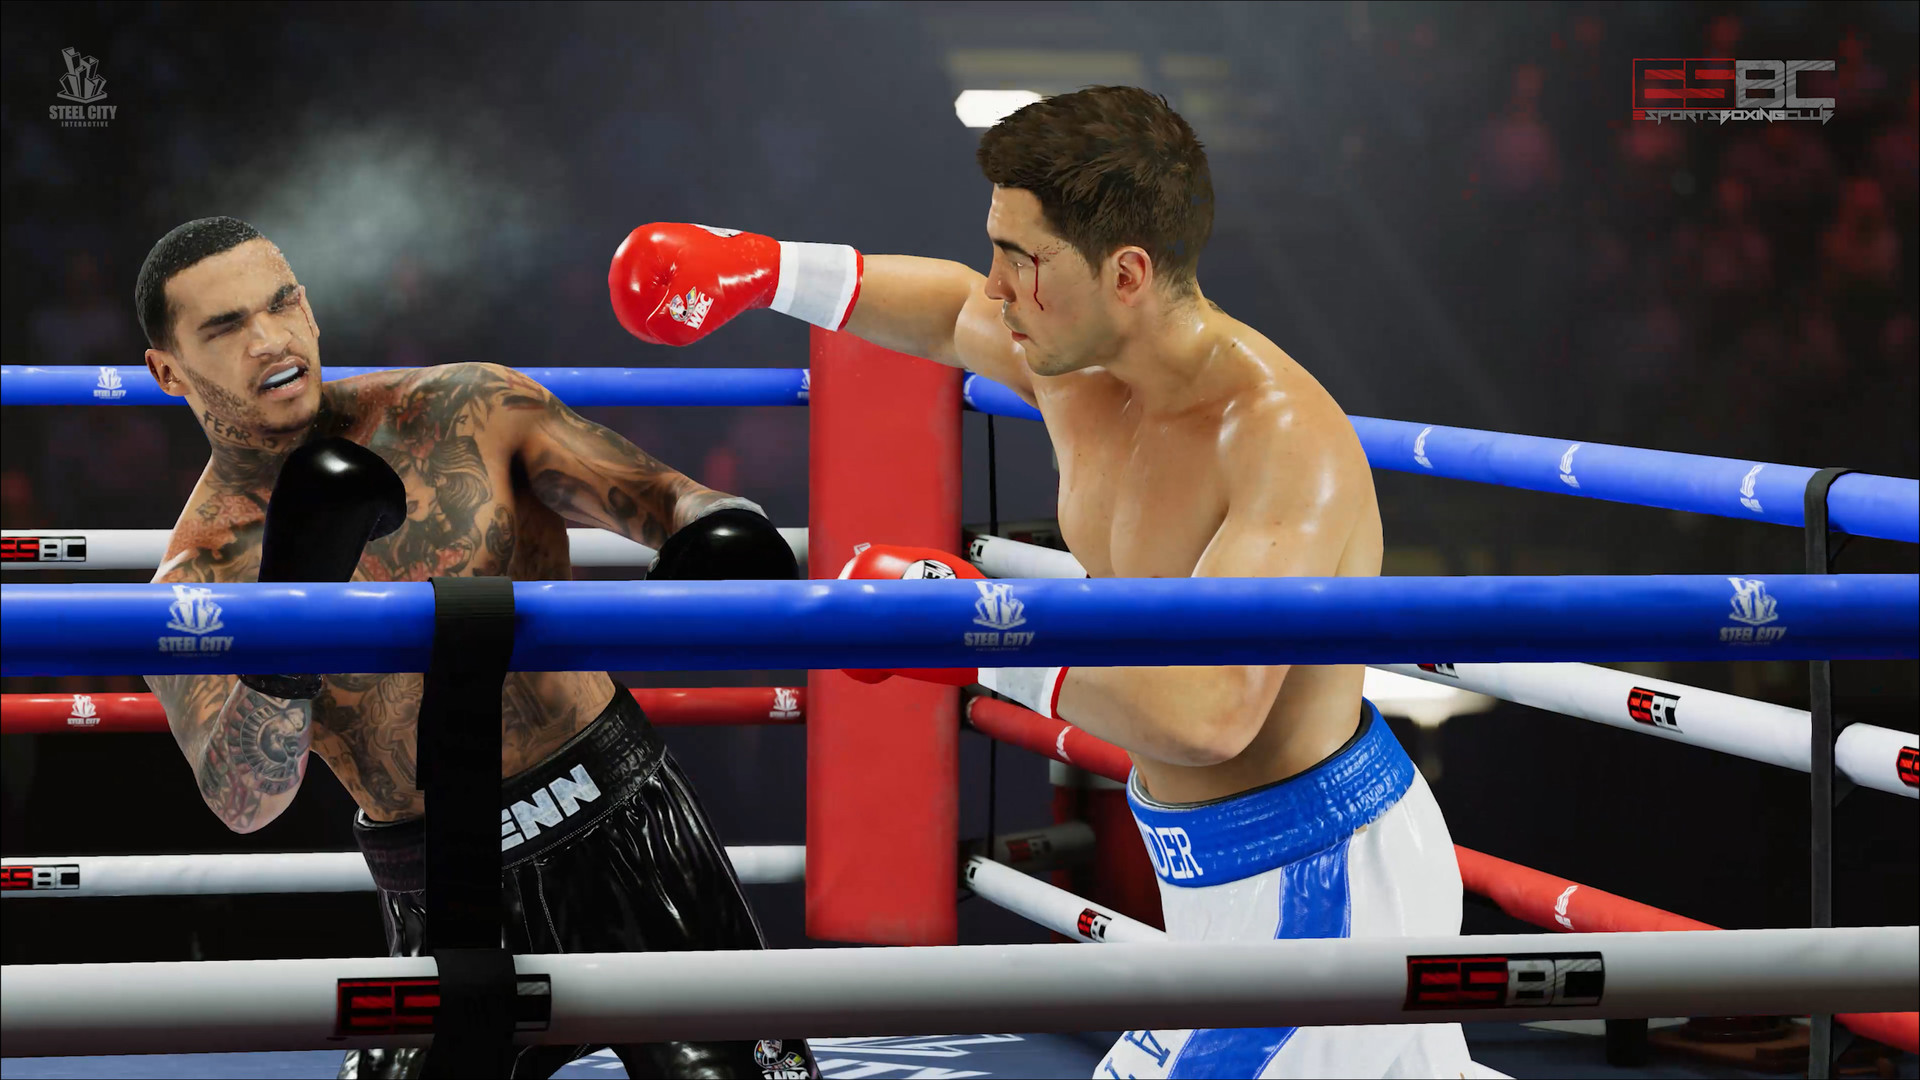 Esports boxing club enlists 100 boxers to early access